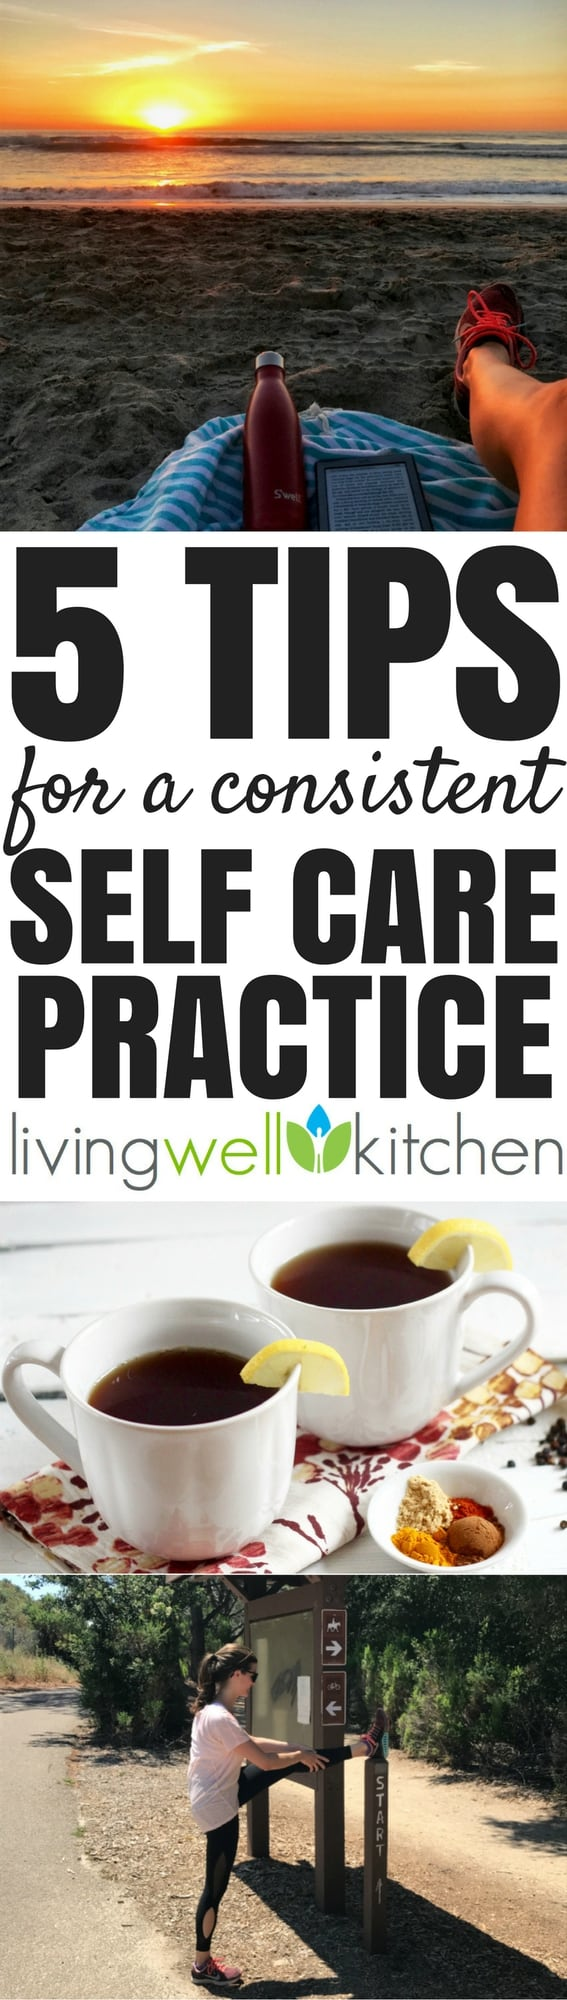 5 realistic tips for having a consistent, enjoyable self care practice from Living Well Kitchen, so you can show yourself some love.